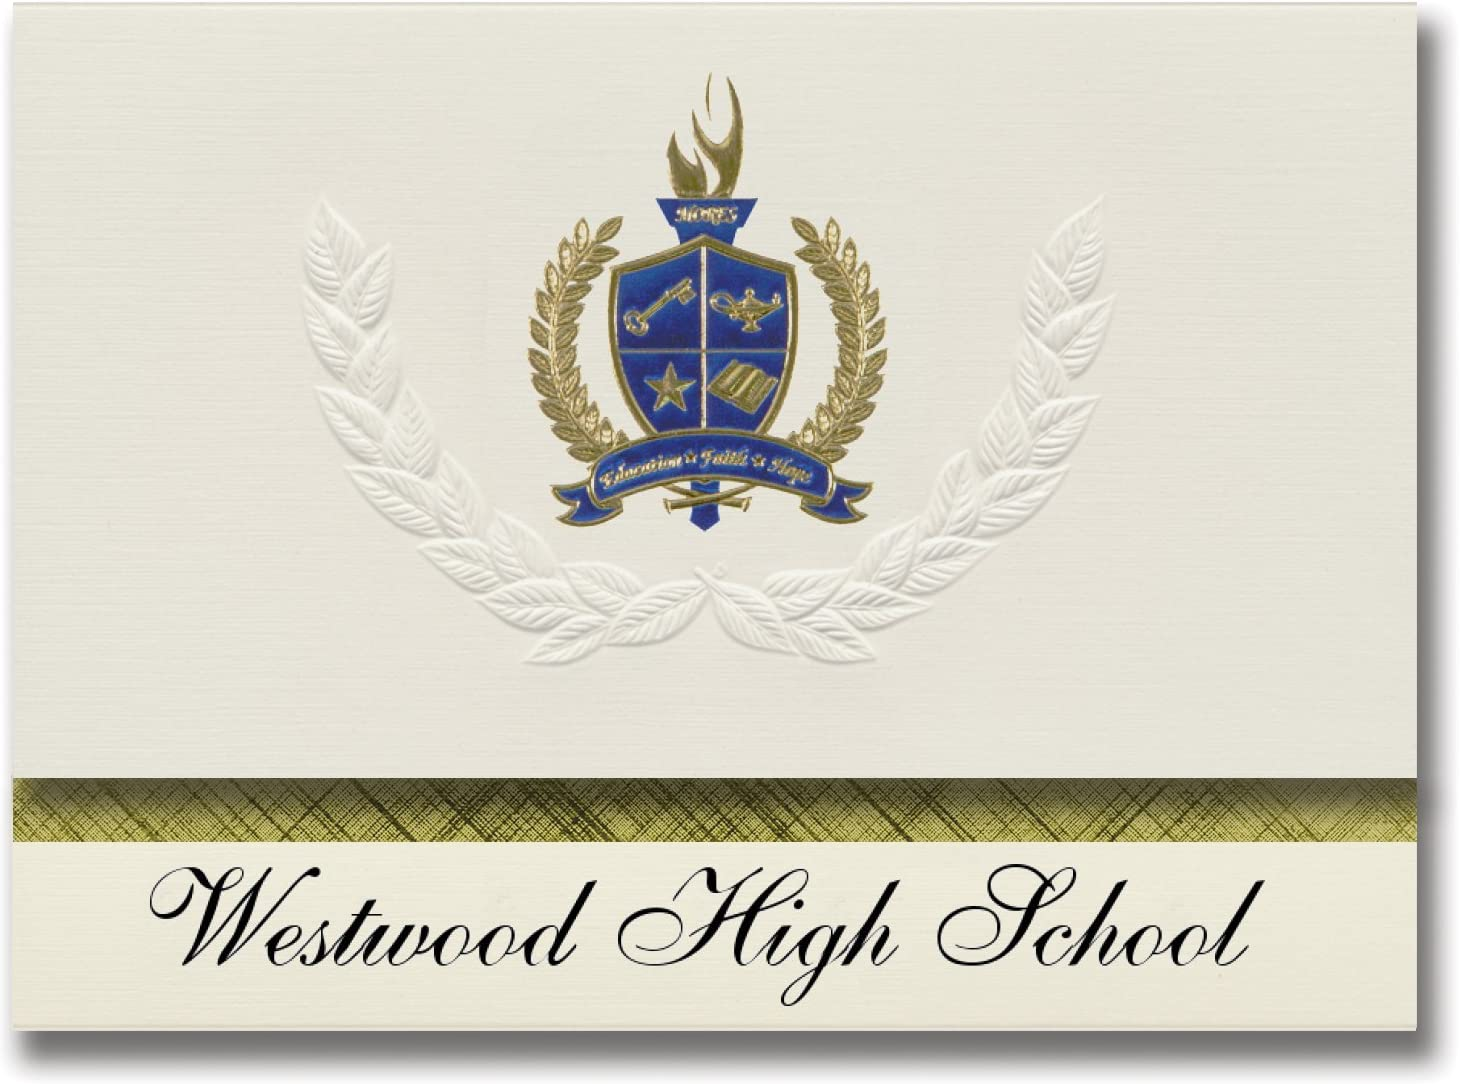 Signature Announcements Westwood High School (Gillette, WY) Graduation Announcements, Presidential style, Basic package of 25 with Gold & Blue Metallic Foil seal